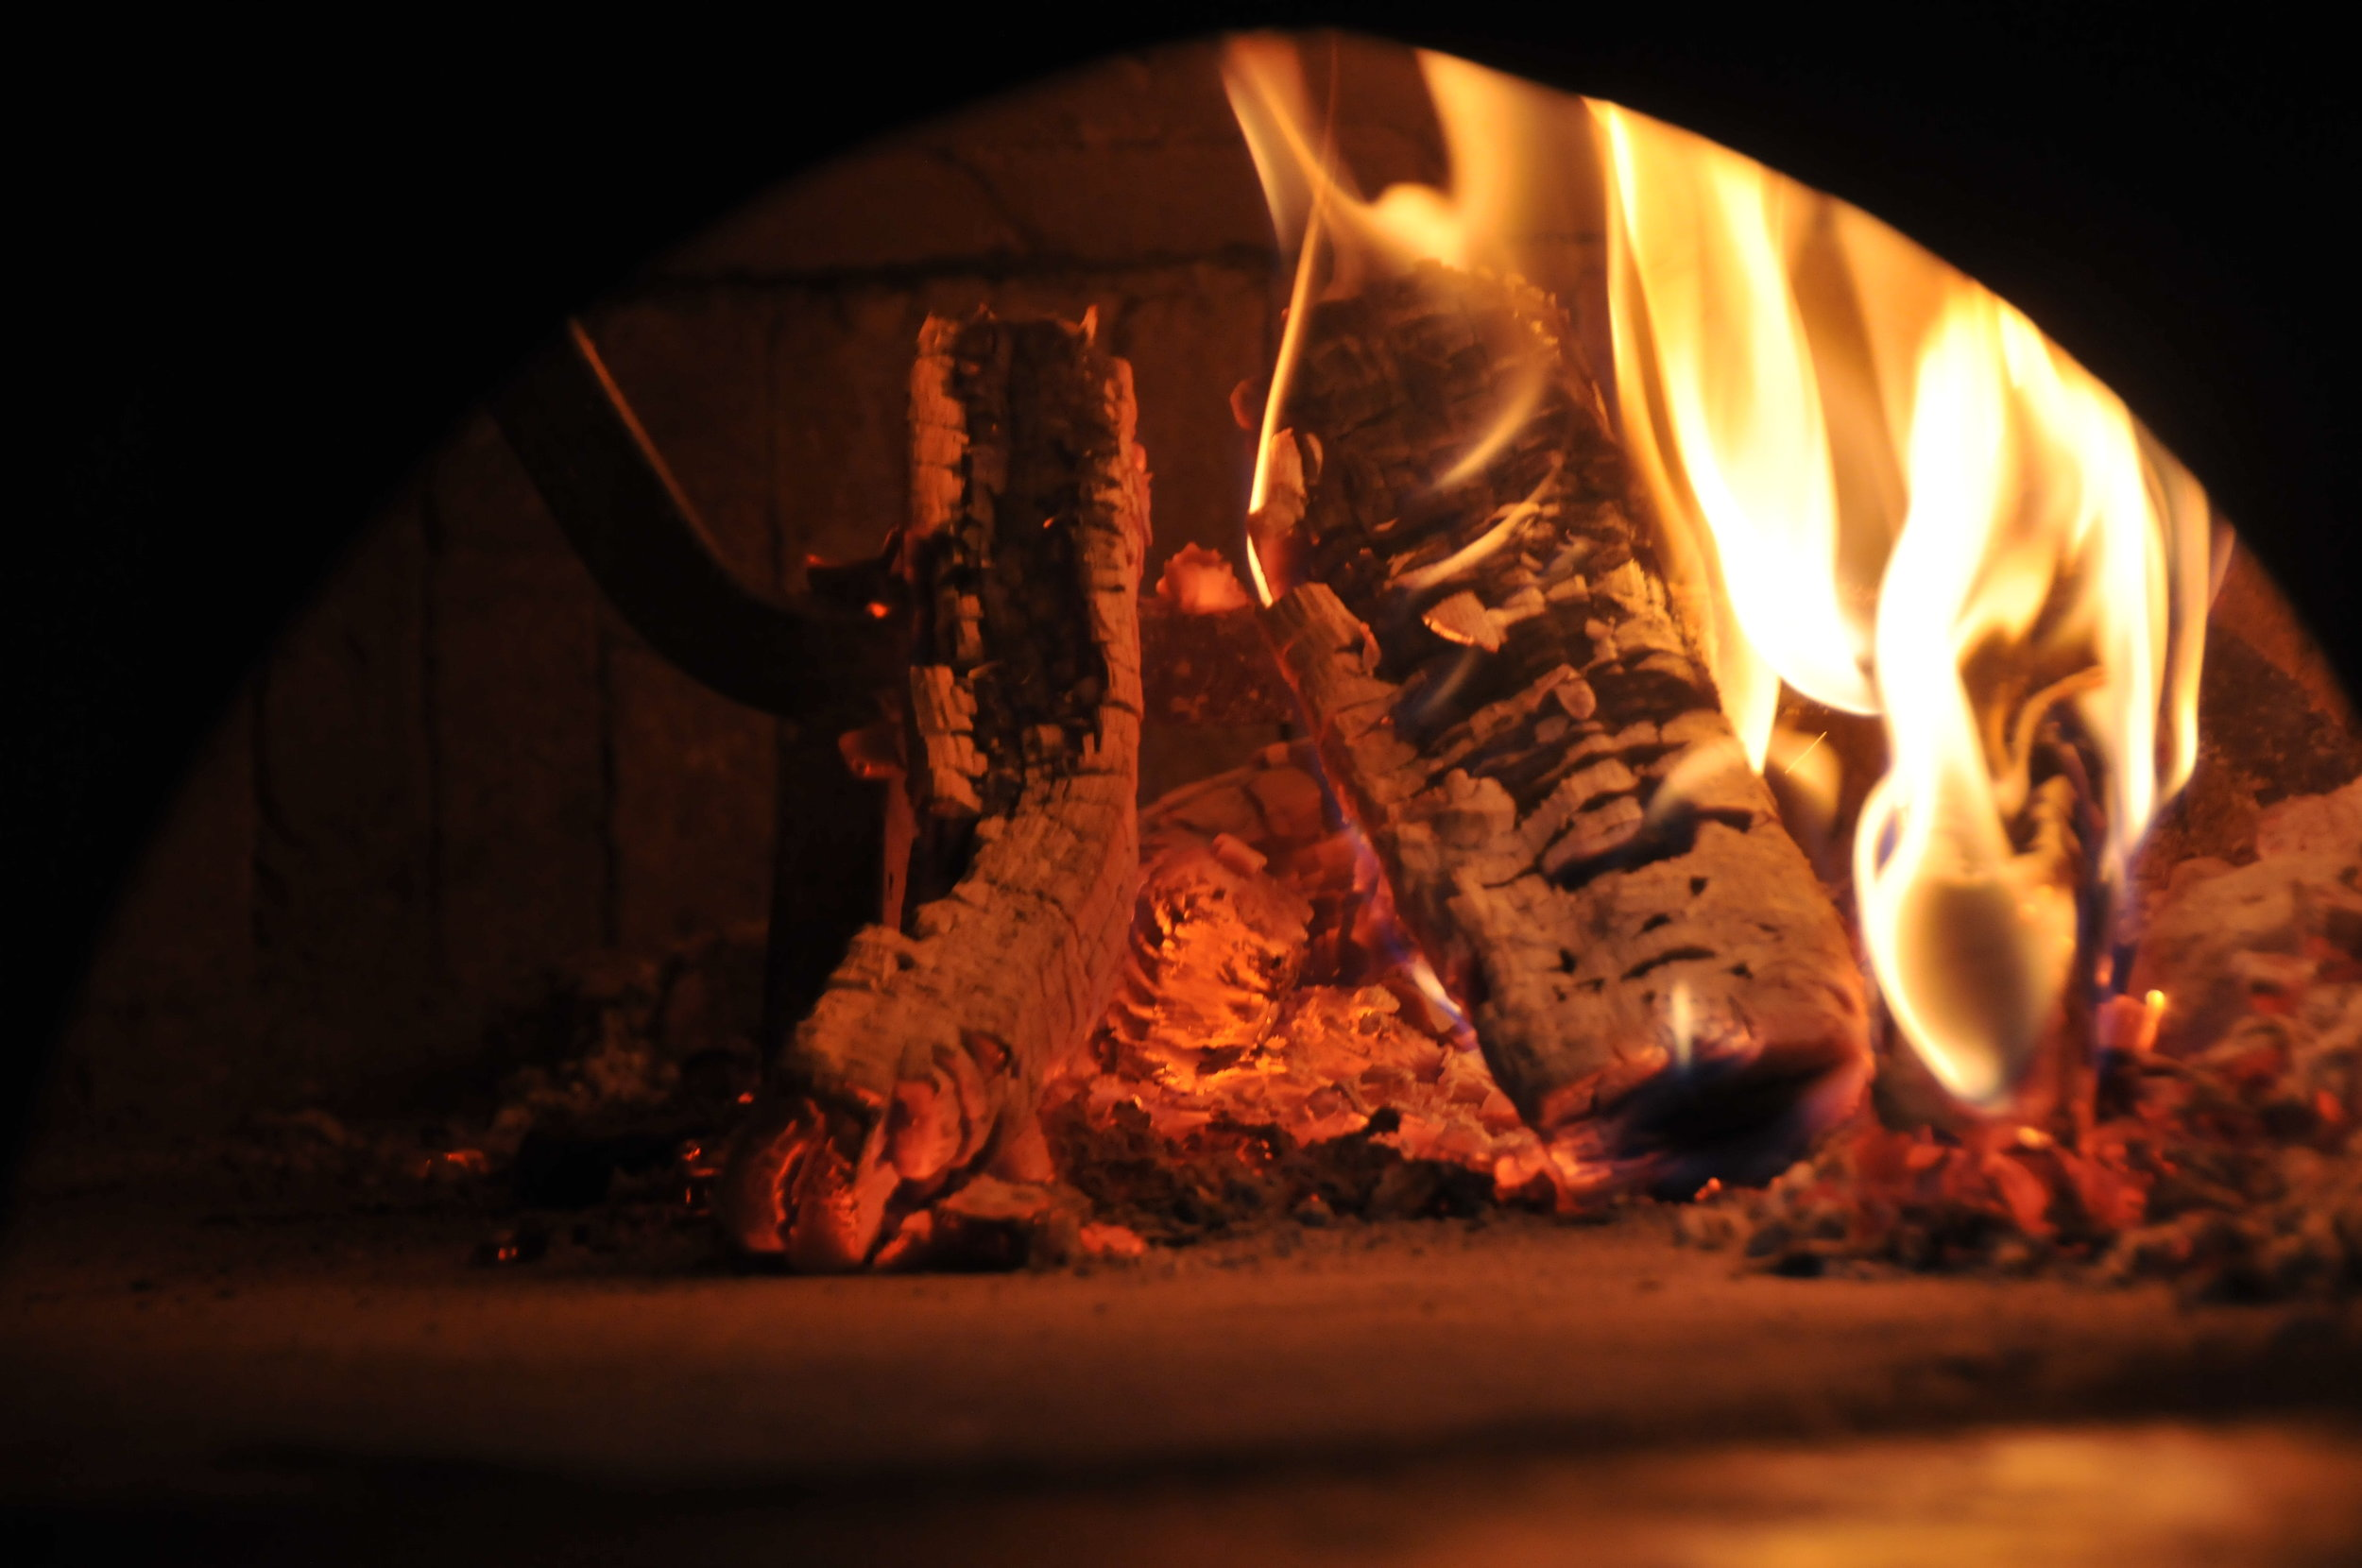 Pizzas are cooked in 60 seconds in Wood-Fired oven according to strict Italian tradition.